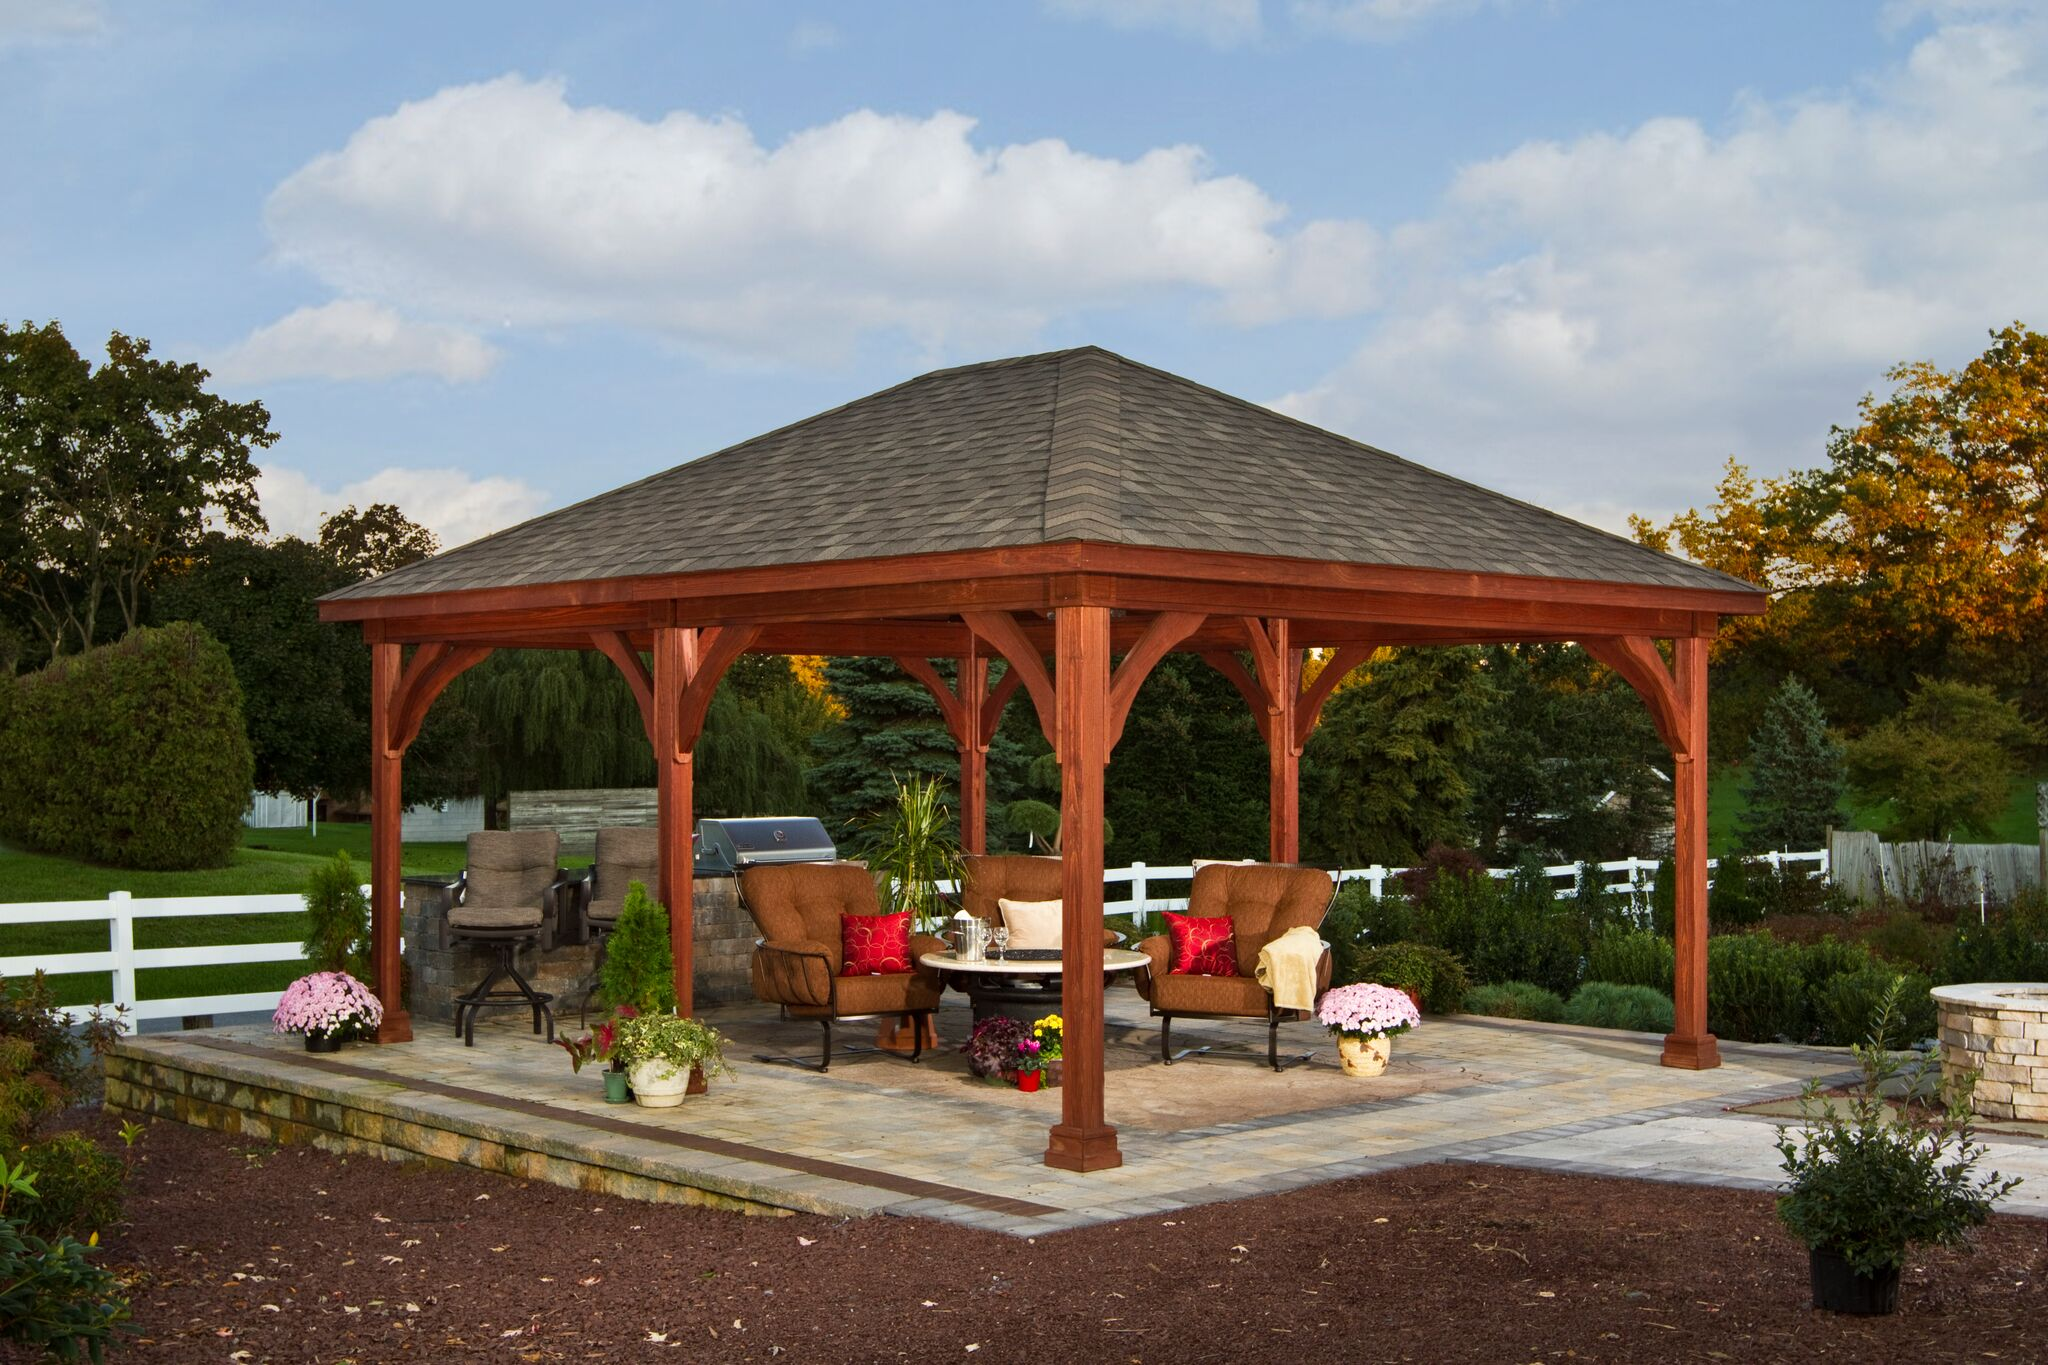 16x20woodpavilion.html-448-16'x20 Traditional Wood Pavilion - Canyon Brown Stain - Asphalt Shingles_preview.jpeg